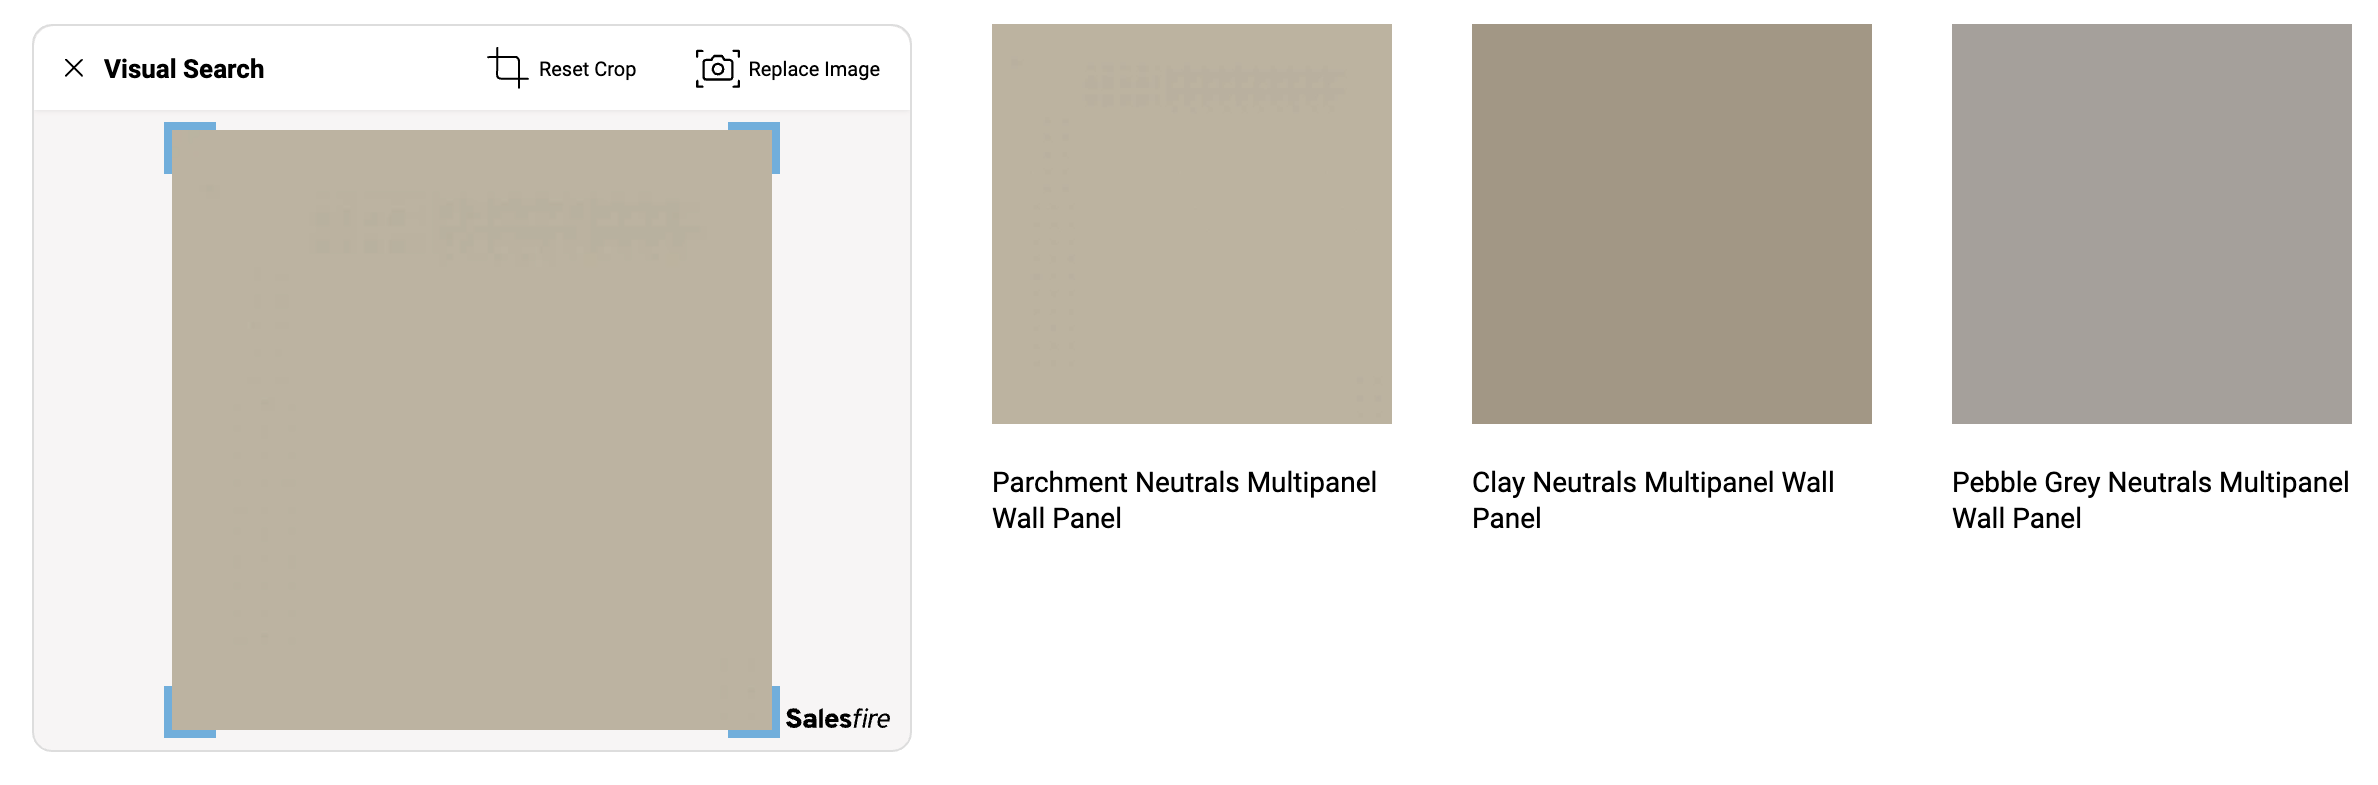 Parchment Neutrals Multipanel Wall Panel